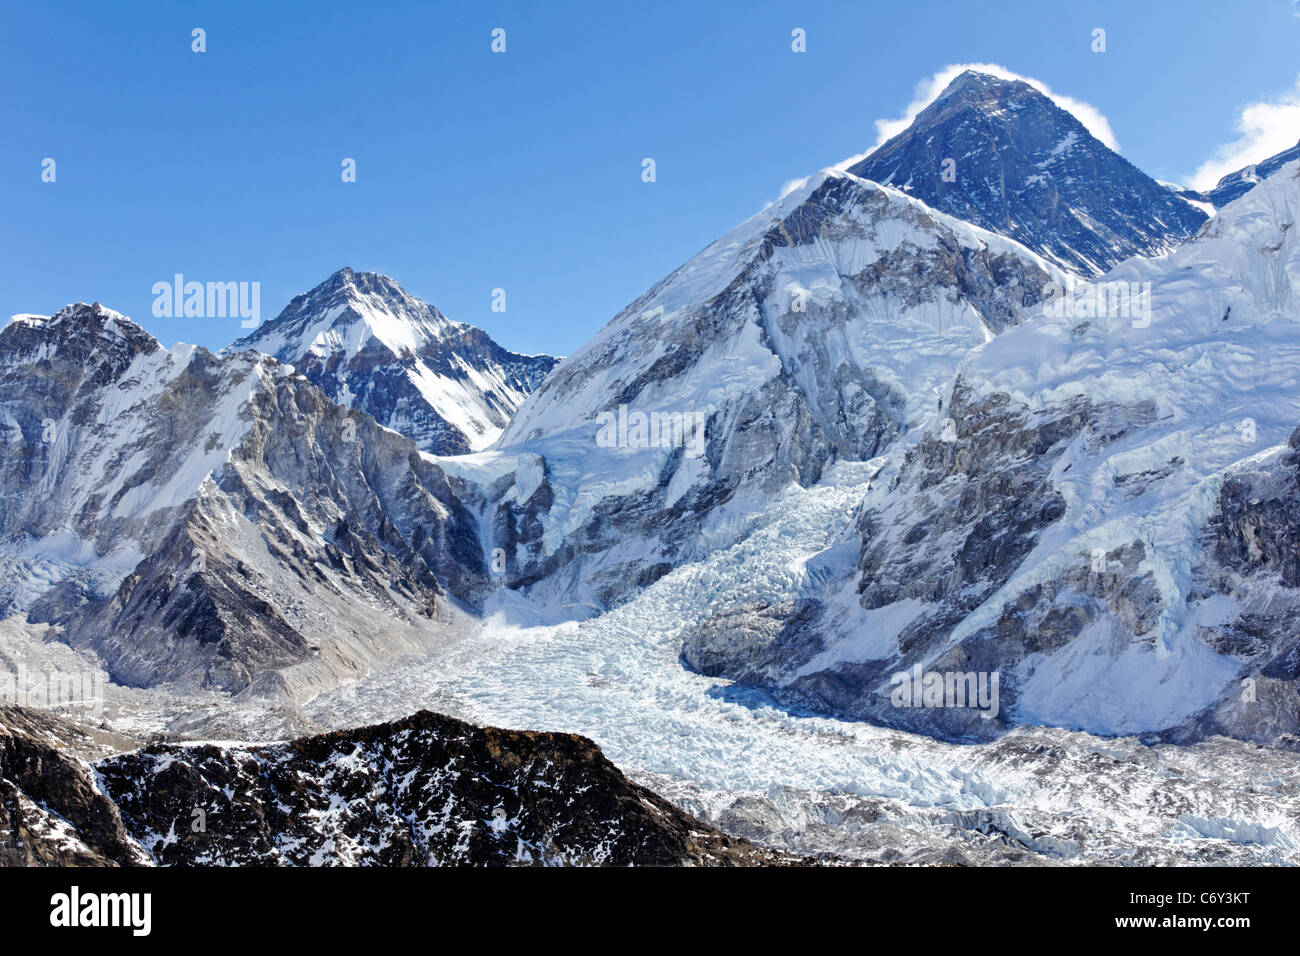 View of Mount Everest from the summit of Kala Pathar, Everest Region, Nepal - Stock Image